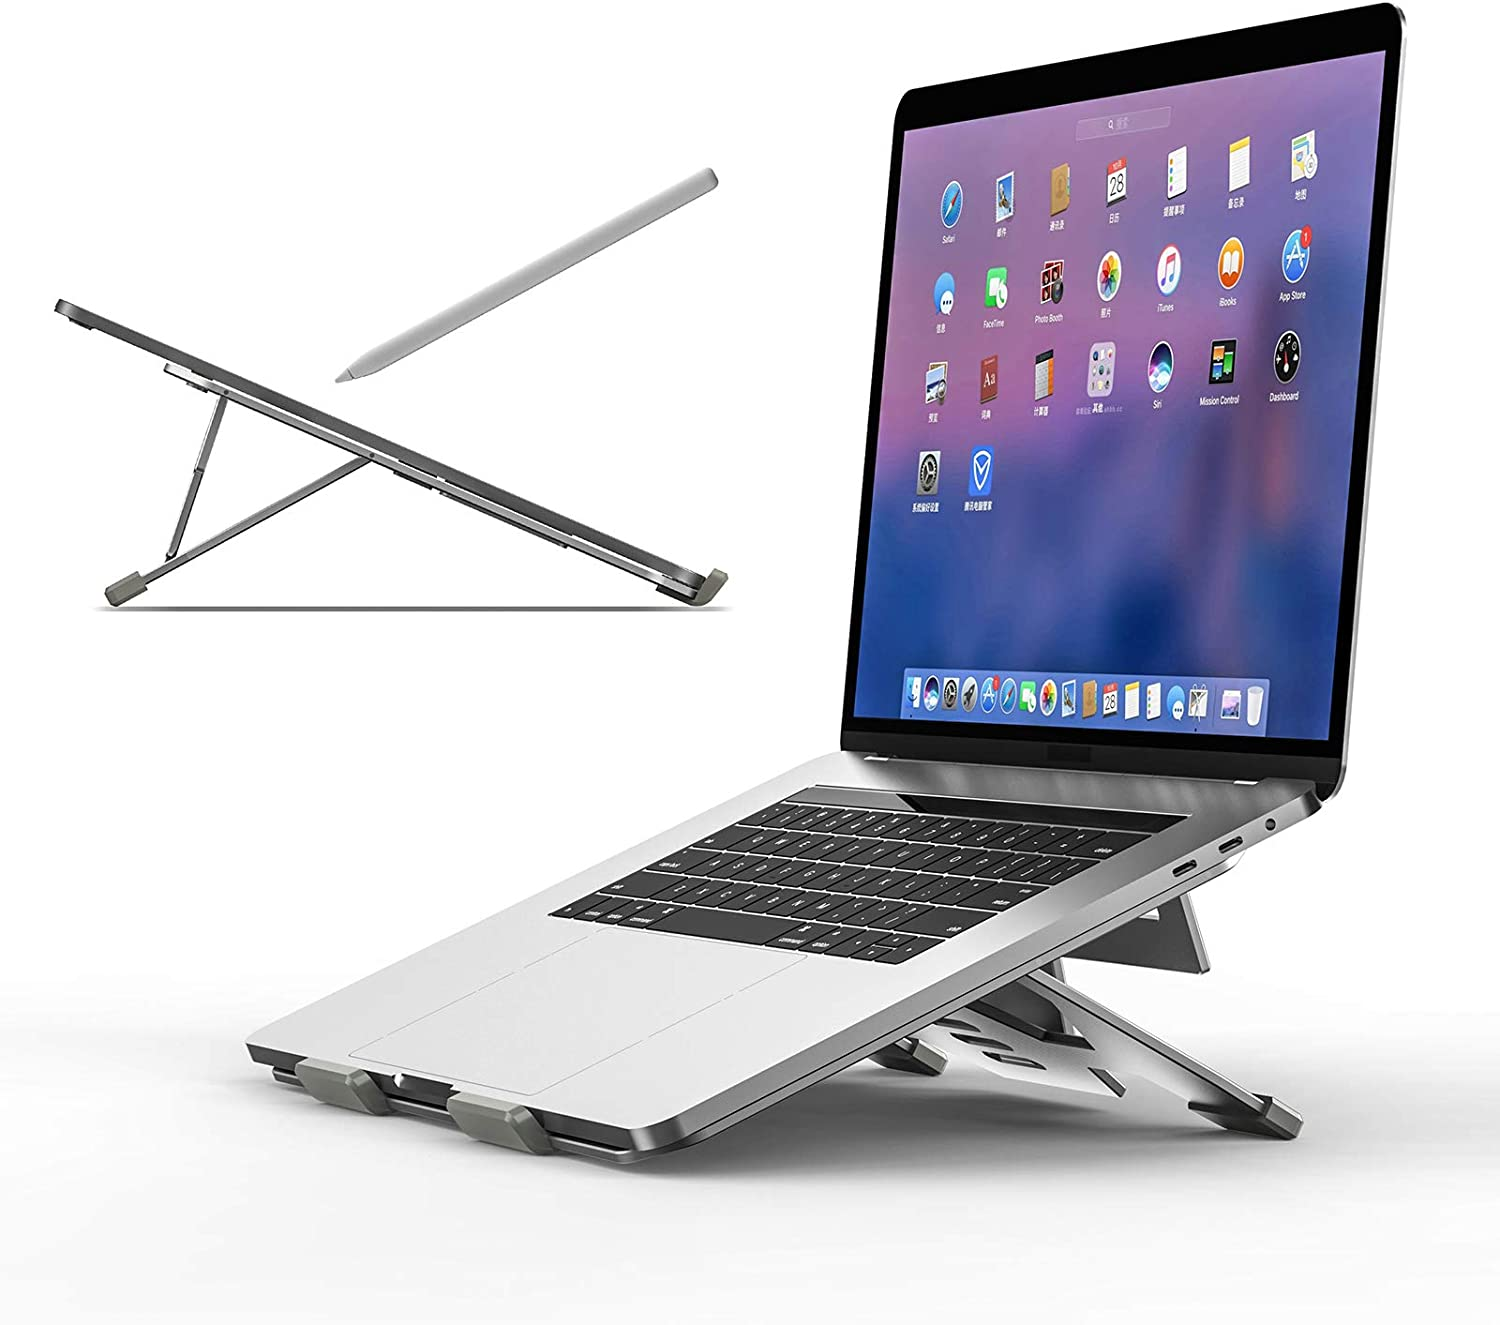 Laptop Stand for Desk - Adjustable Aluminum Drawing Tablet Stand Riser Portable Notebook Holder Stand Compatible with MacBook Air Pro,Wacom,Chromebook,iPad Pro,HP,Dell,Lenovo 10-17